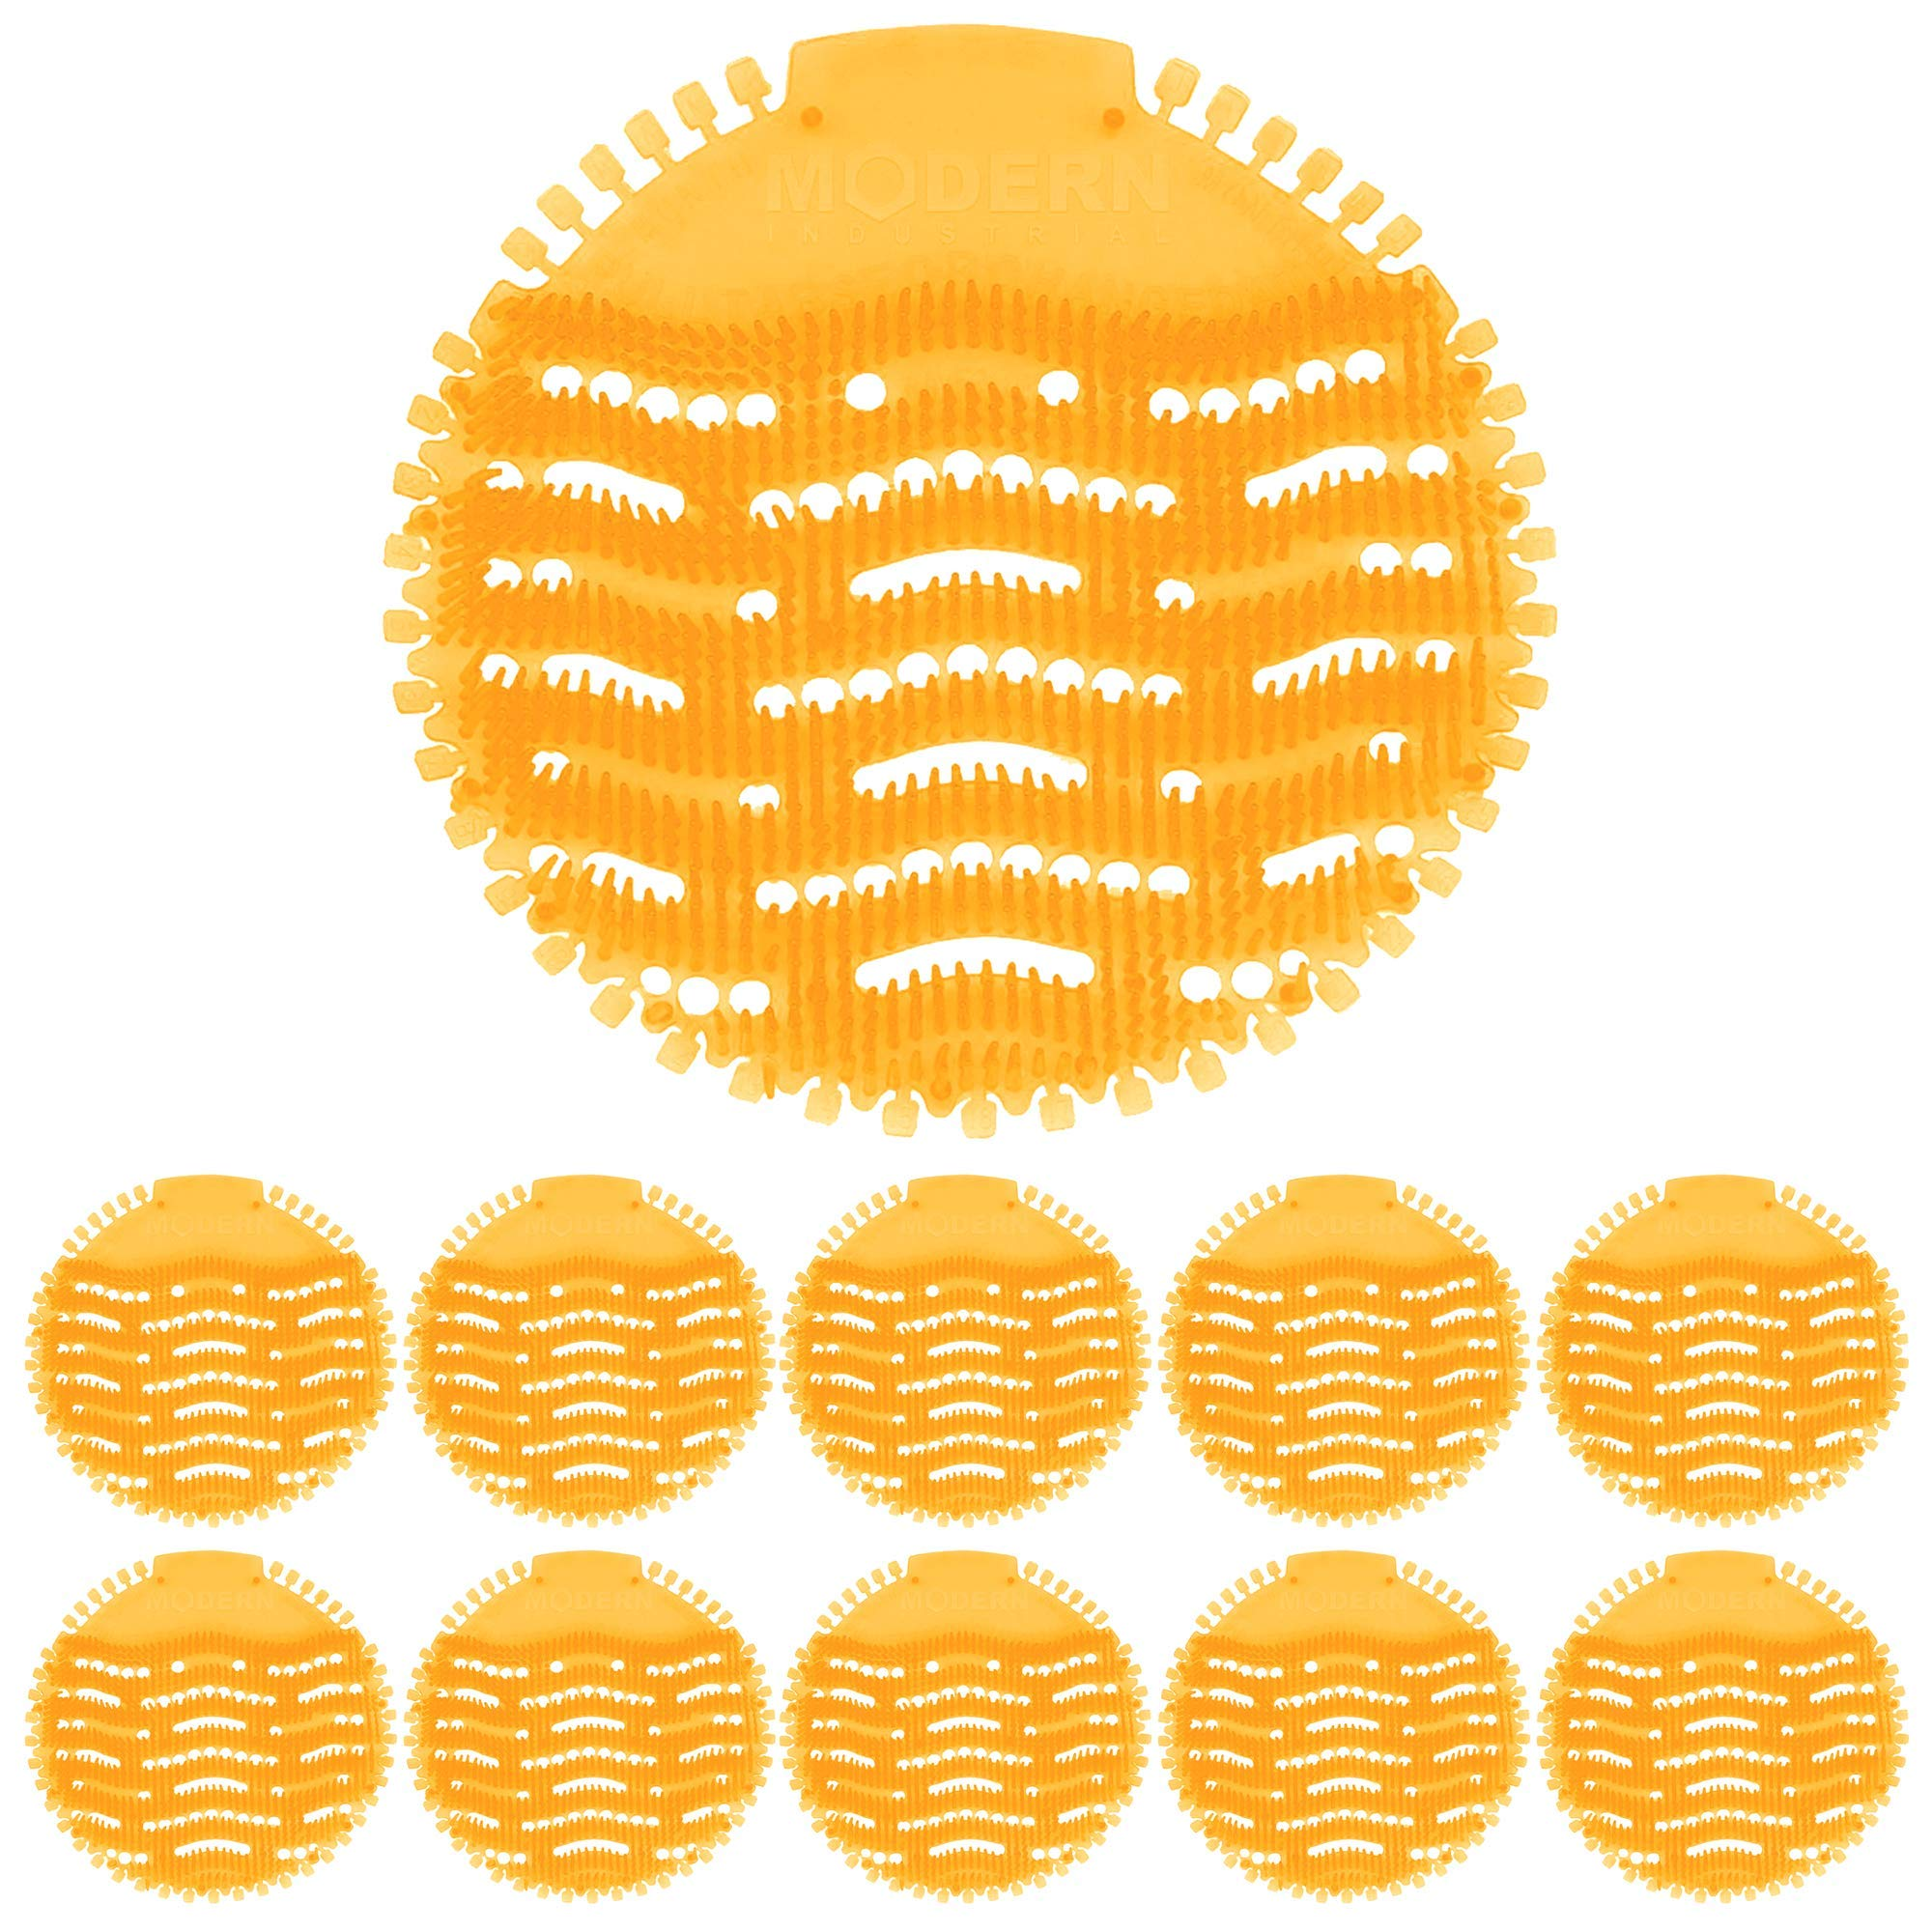 Urinal Screen & Deodorizer (10-Pack) by Modern Industrial - Fits Most Top Urinal Brands at Restaurants, Offices, Schools, etc. (Orange Citrus) by Modern Industrial